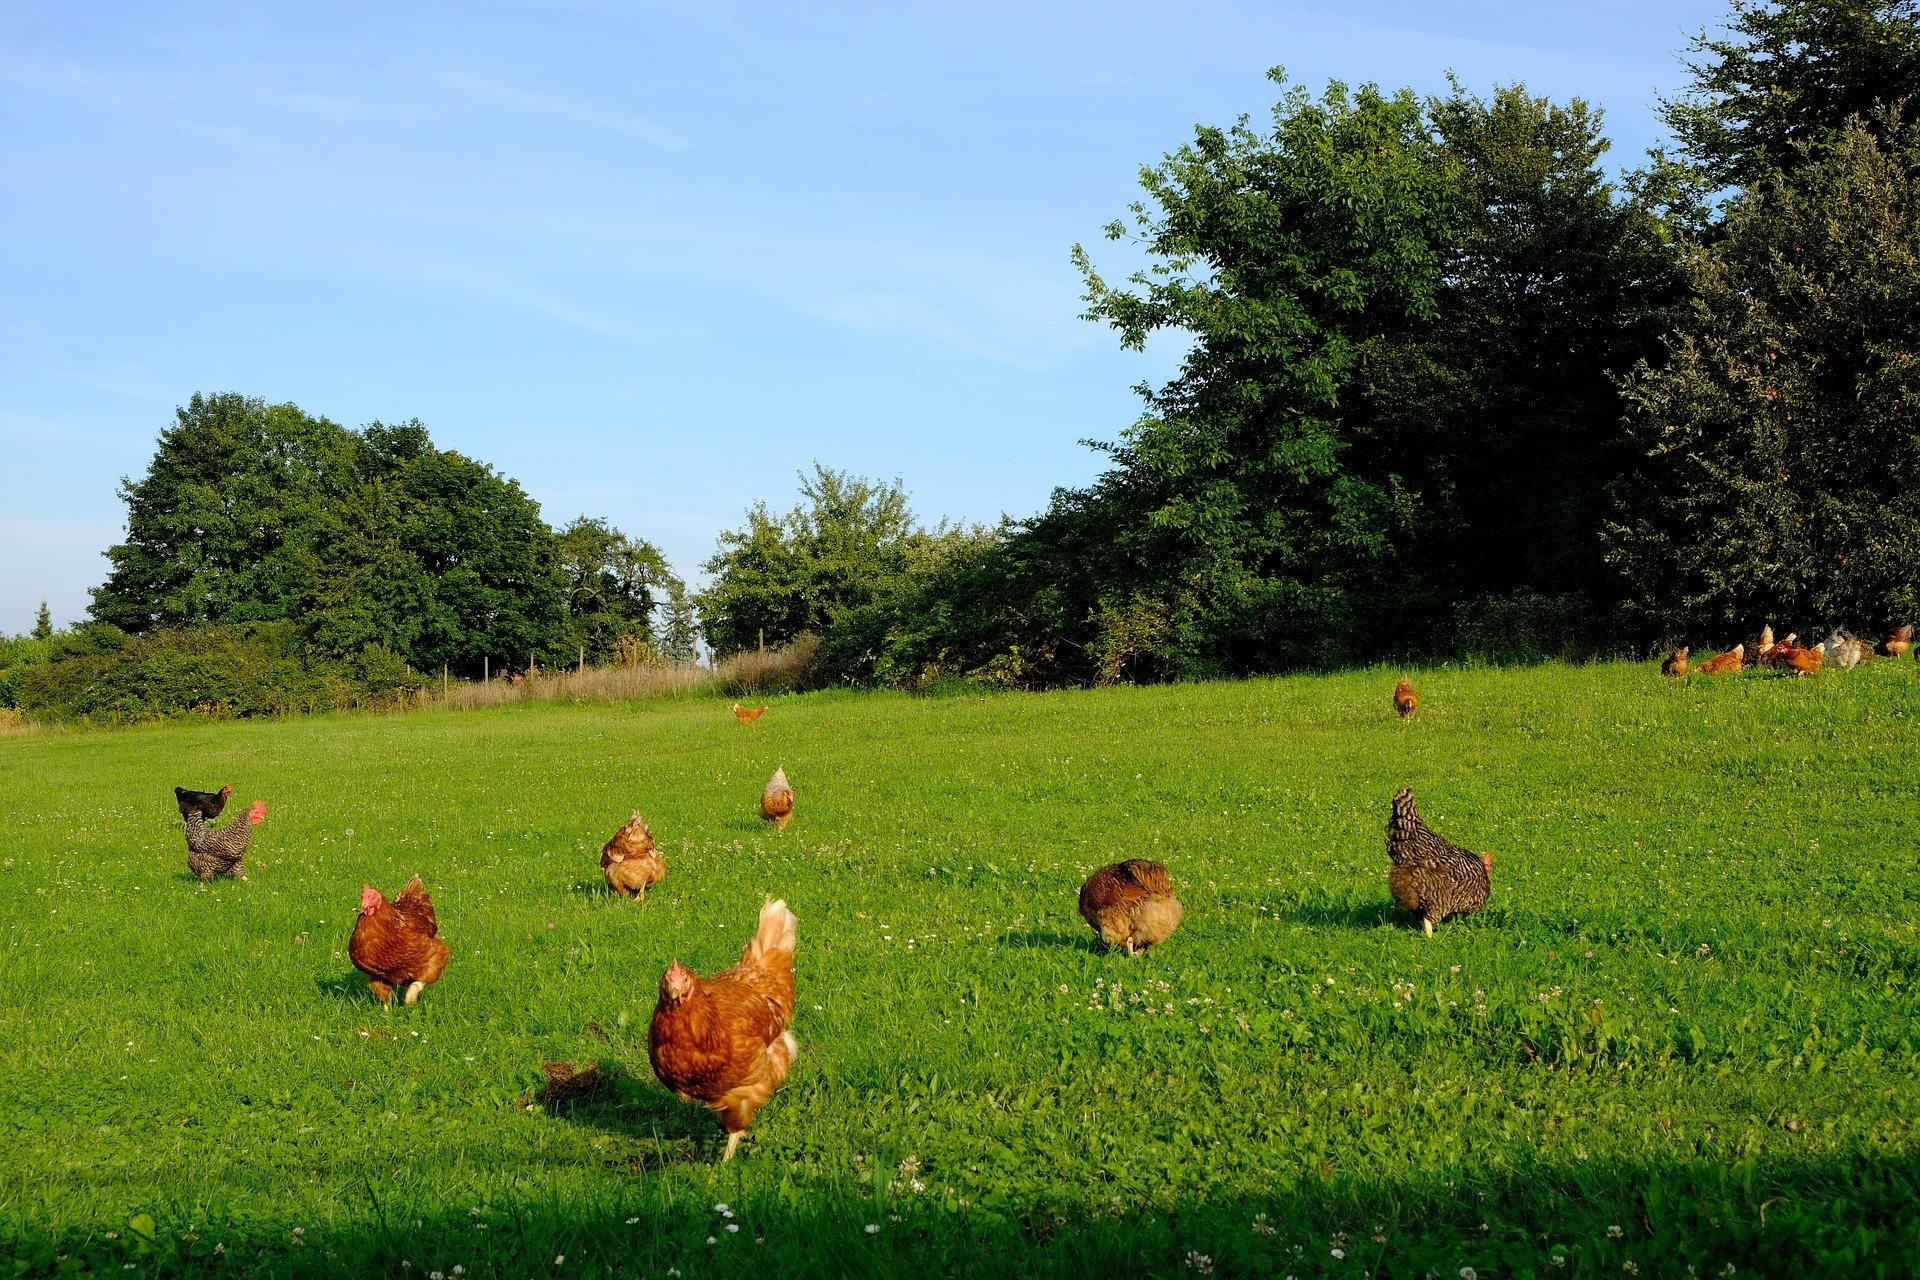 About twelve brown chickens wandering across a sloping field